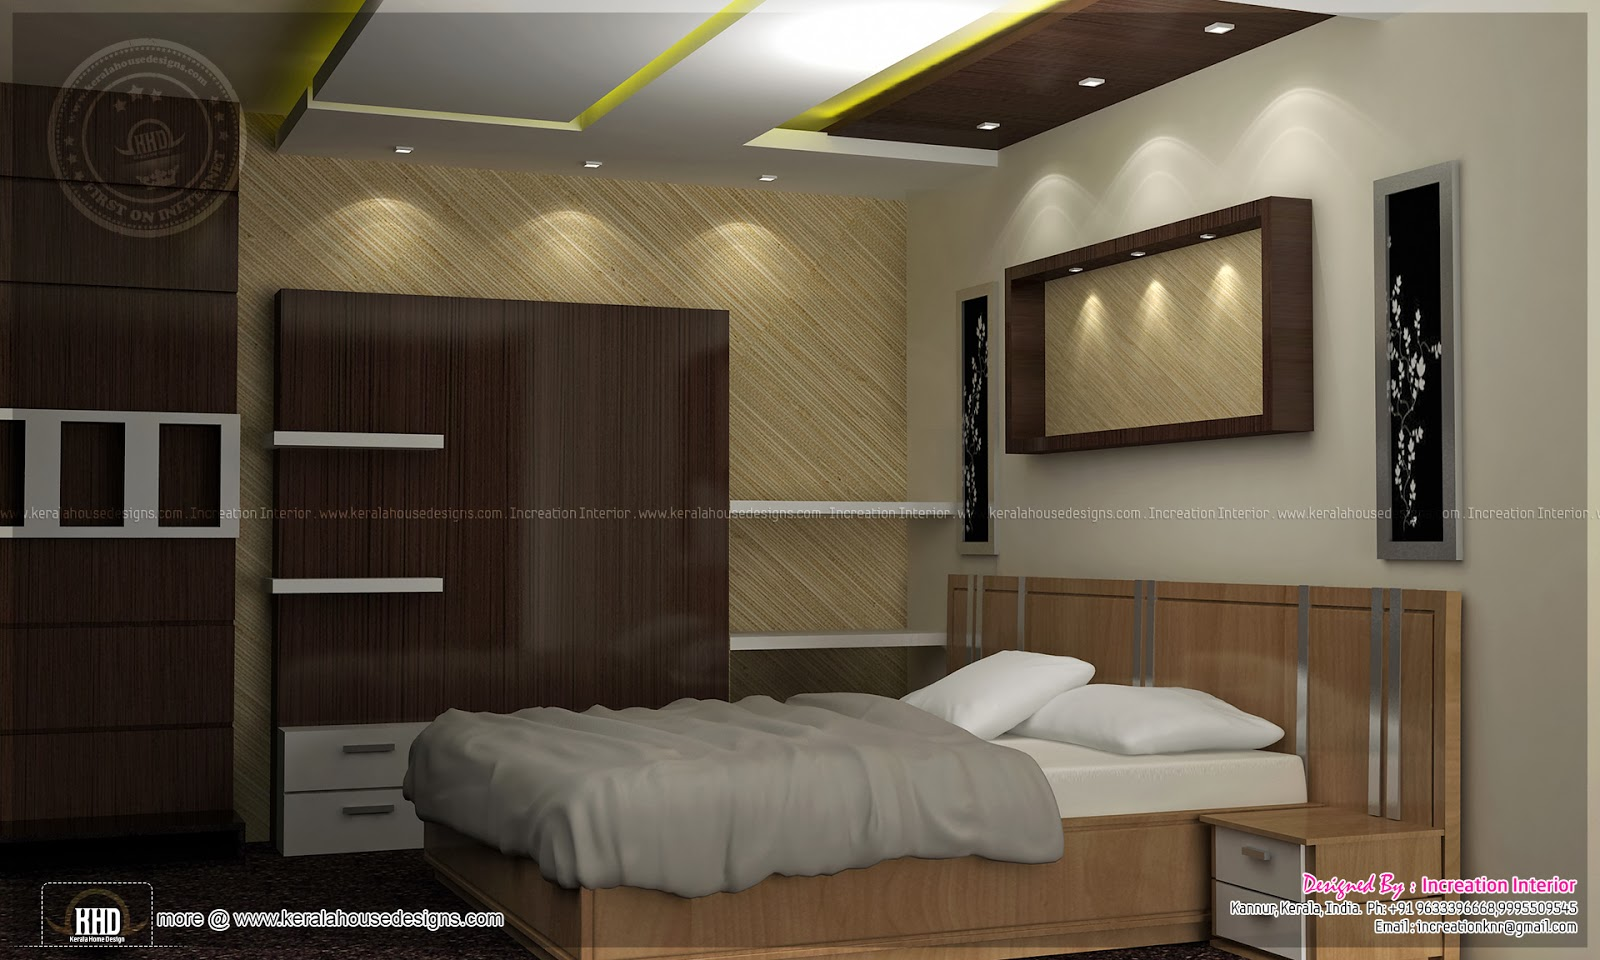 Bedroom interior designs indian house plans - Interior home design pic ...